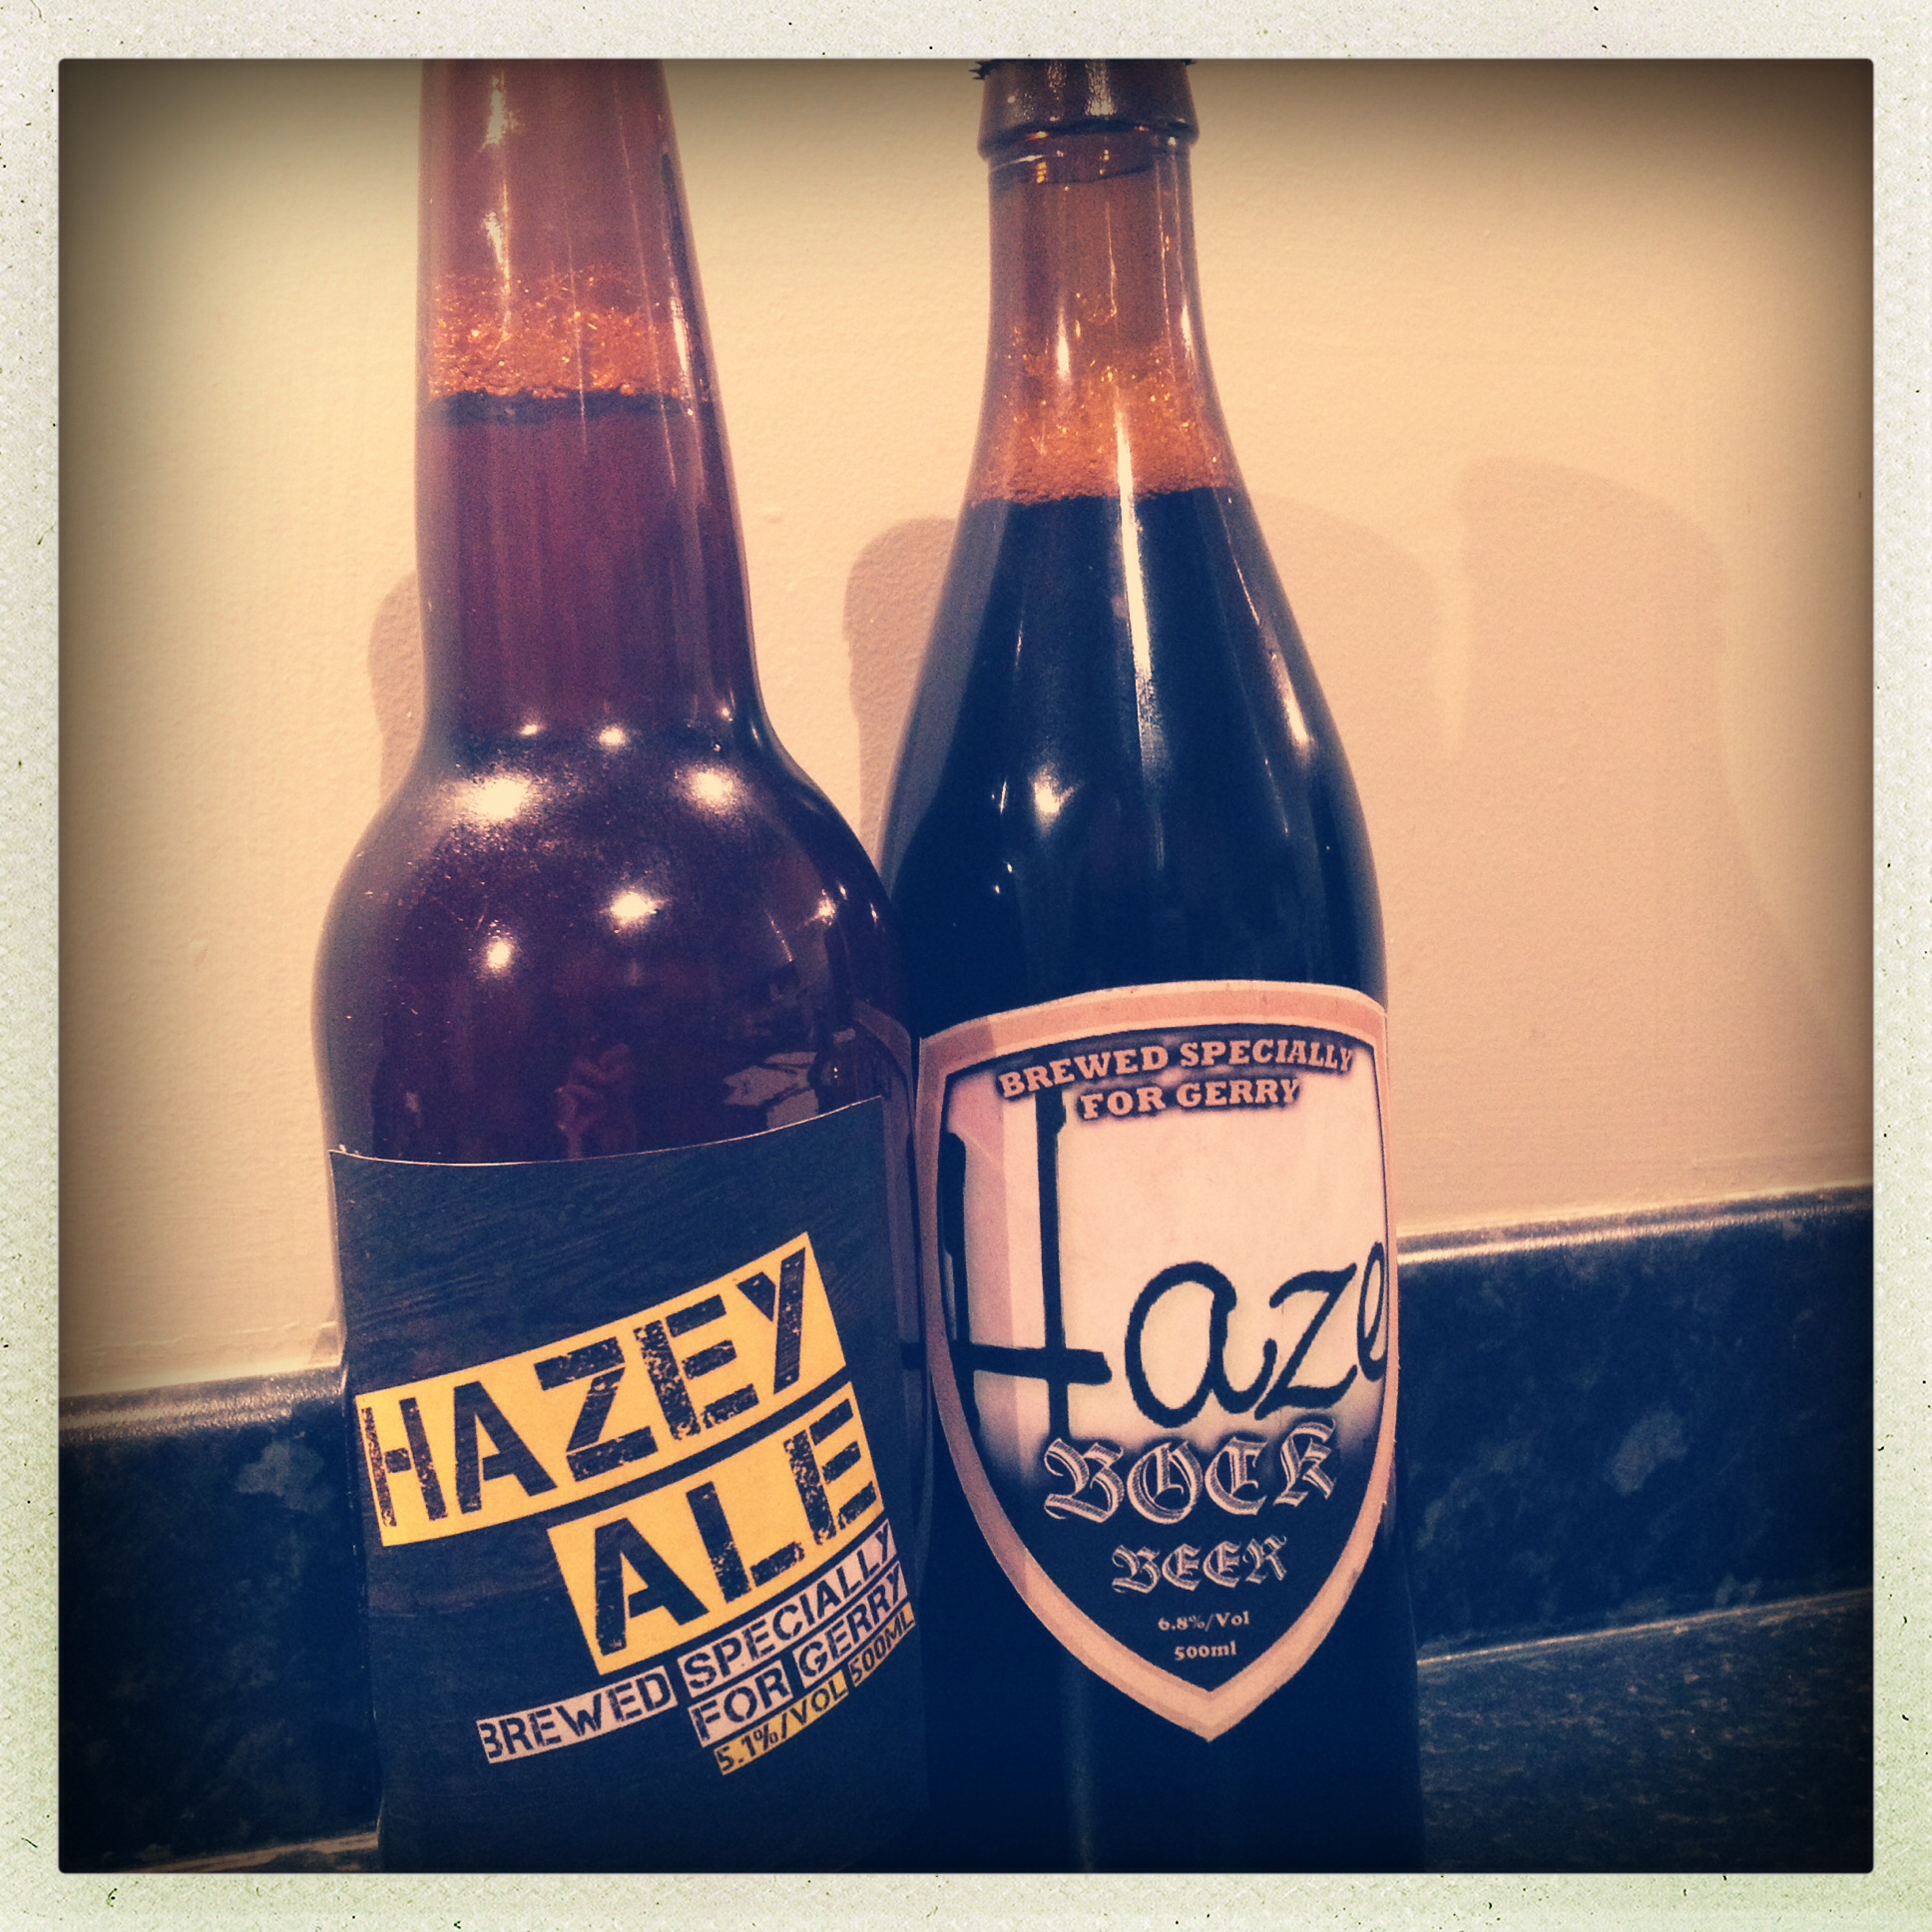 Haze Guitars beer